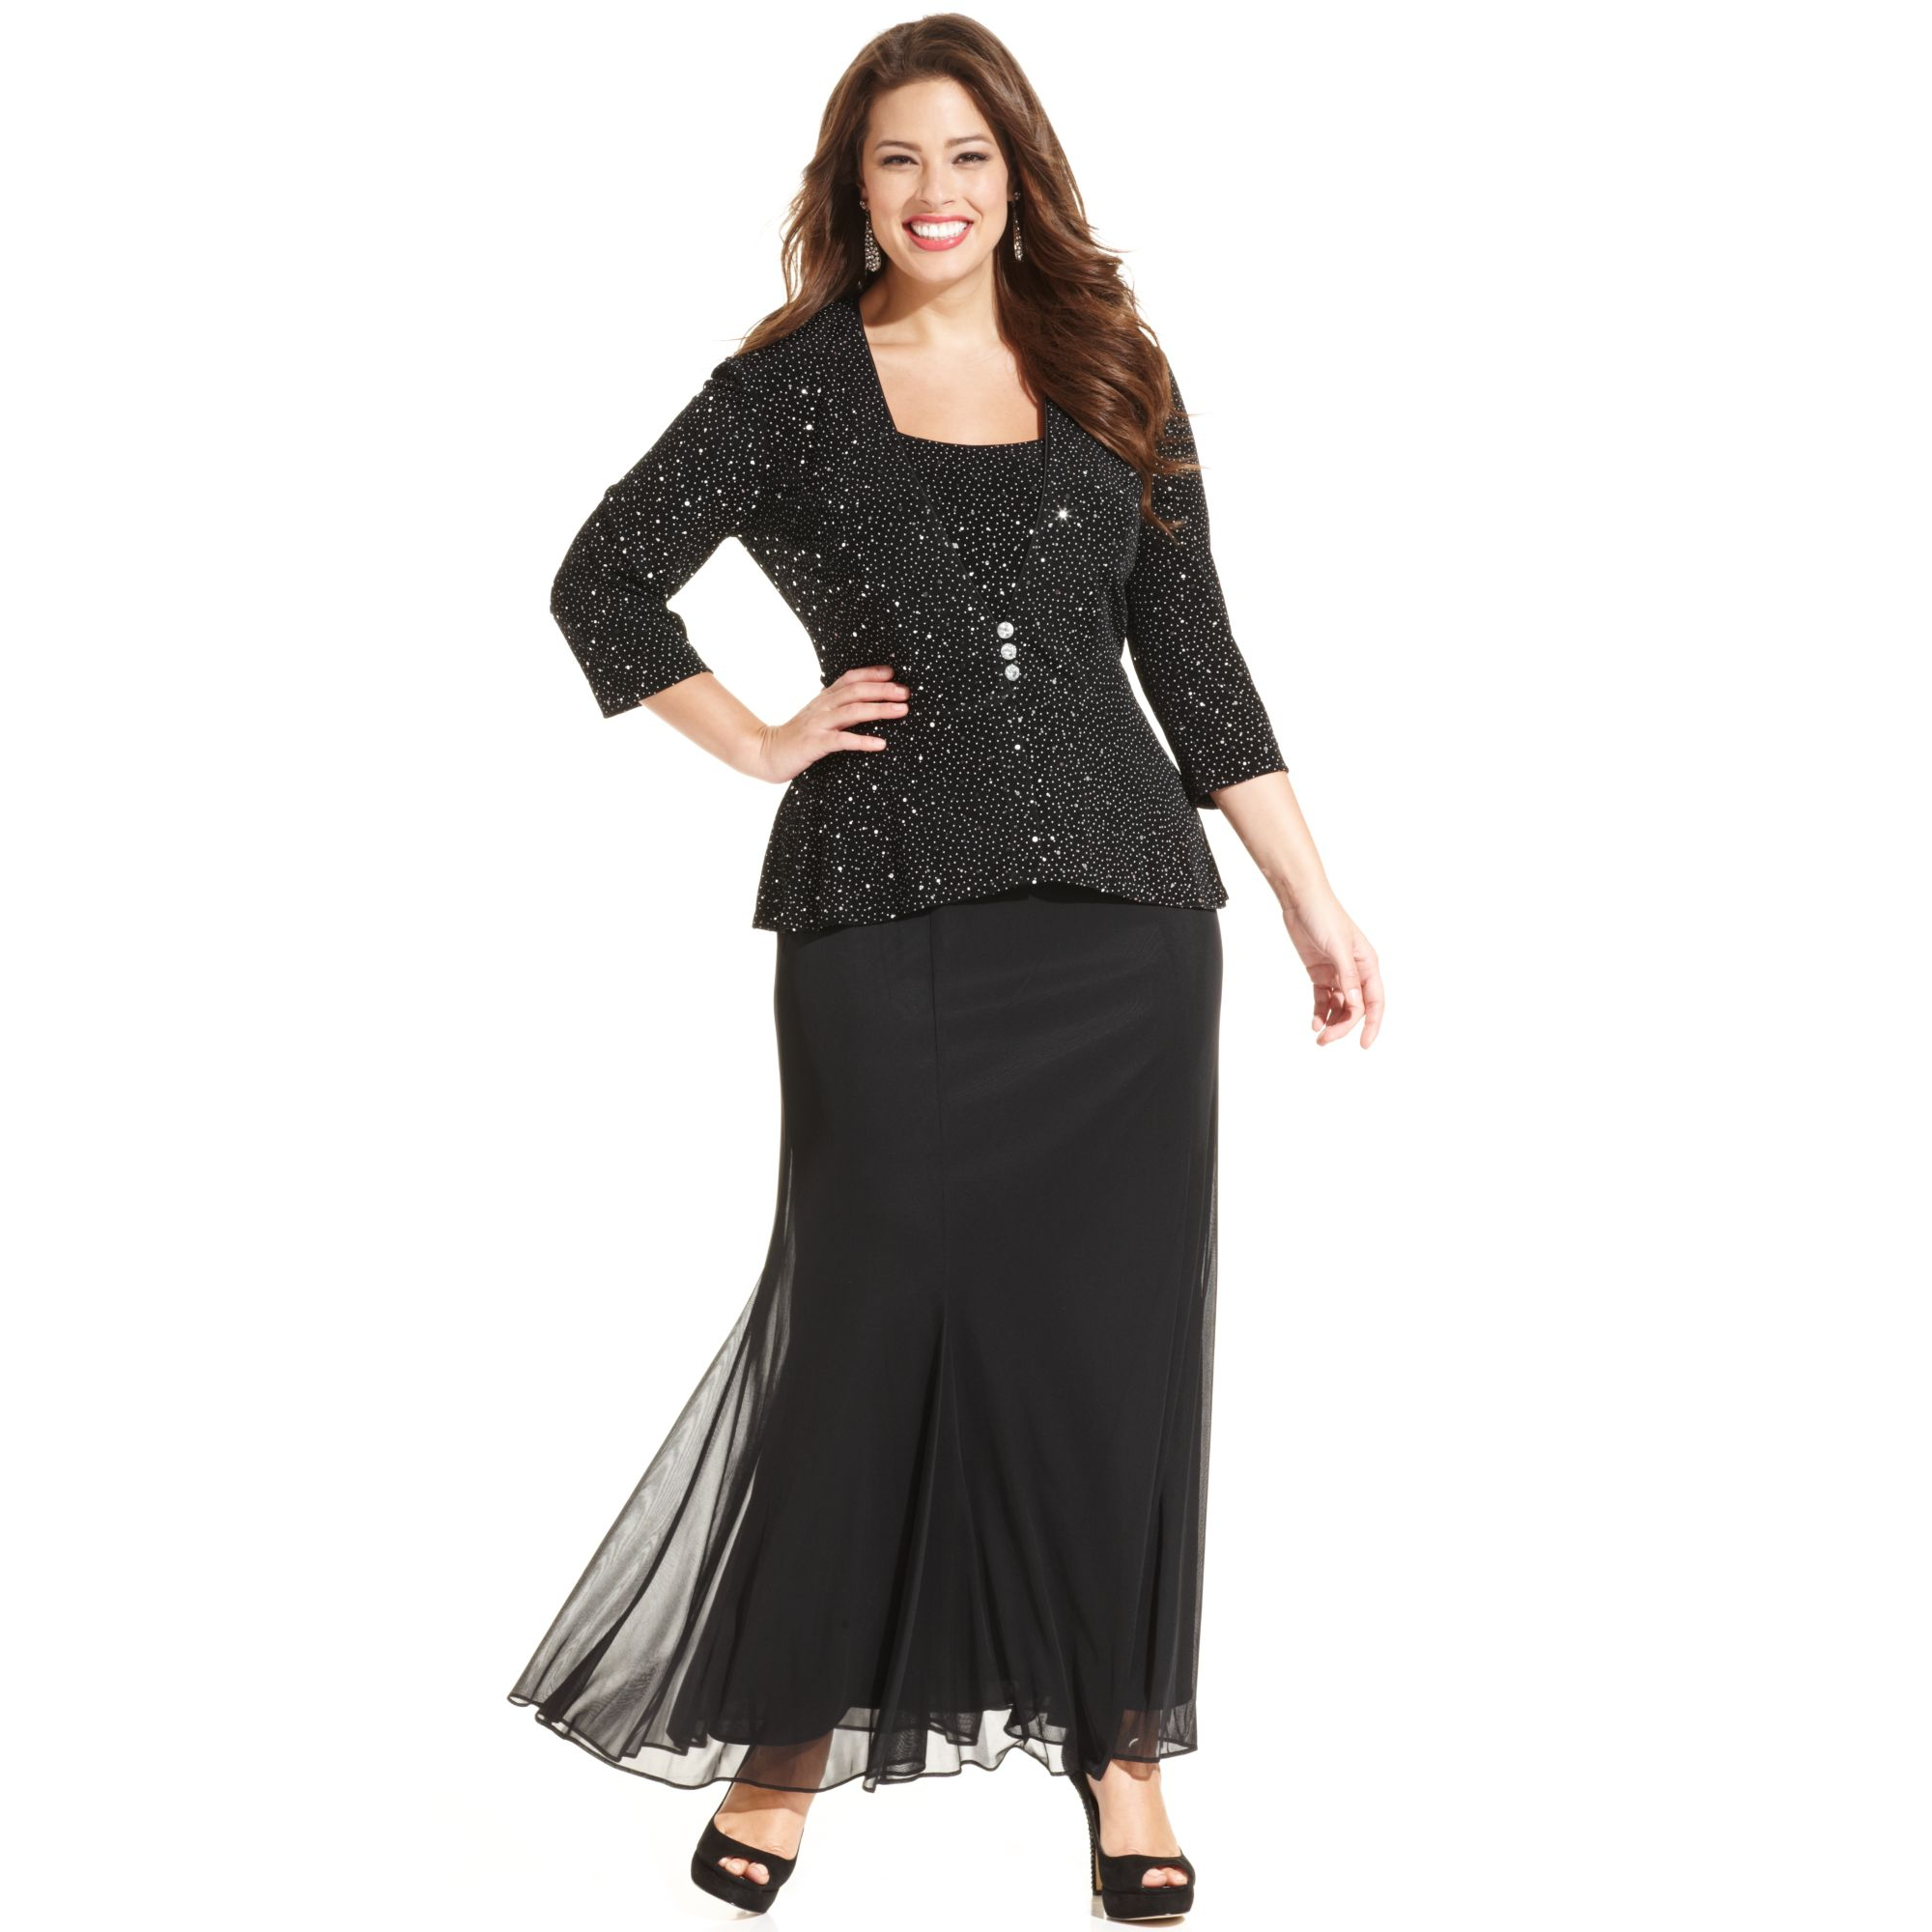 702f57213eef3 Lyst - Alex Evenings Plus Size Sleeveless Sequin Chiffon Gown and ...